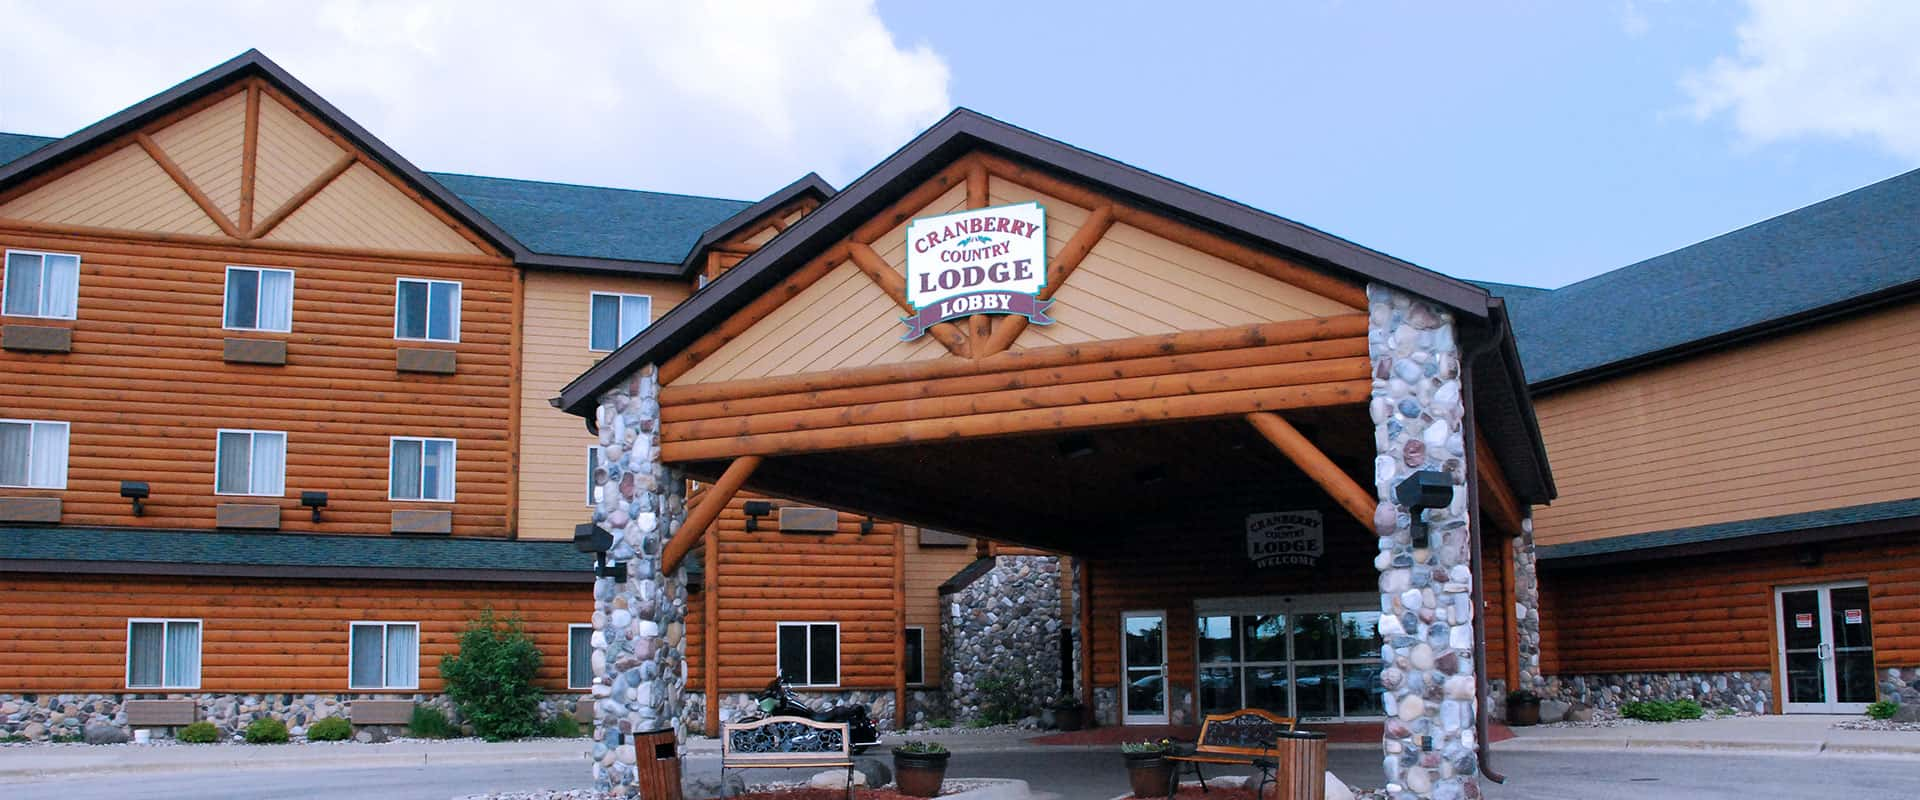 Cranberry Country Lodge Tomah Wisconsin Hotel And Lodging